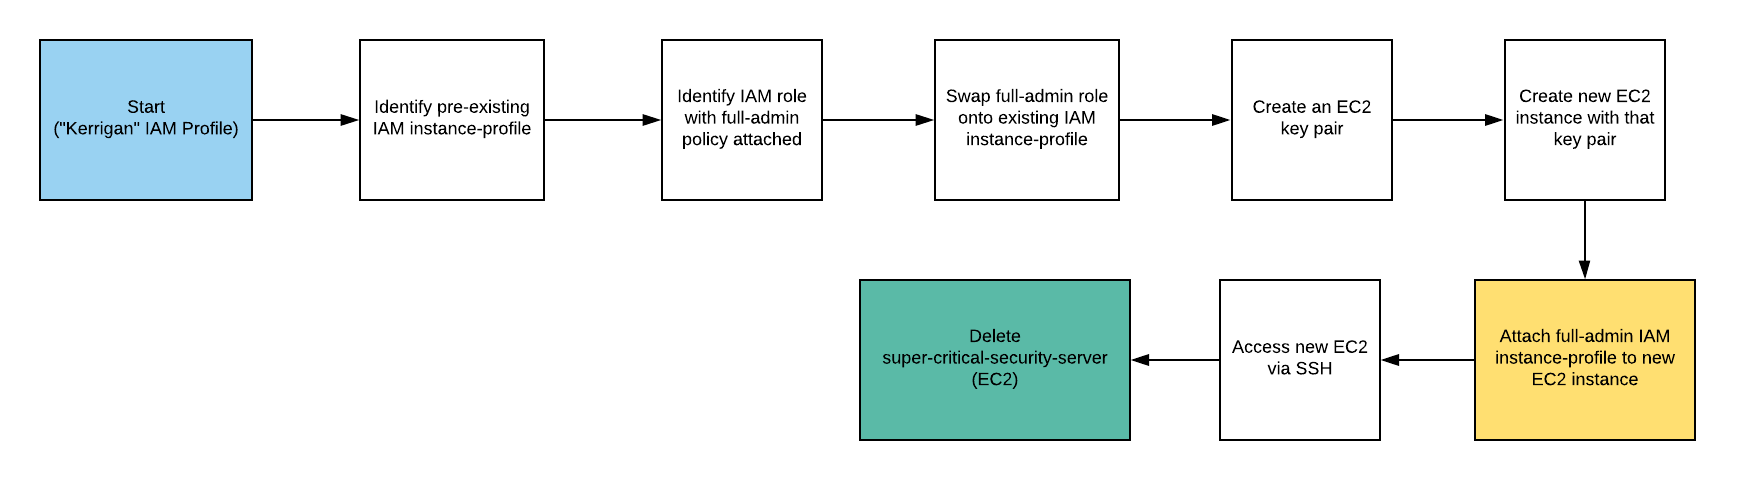 cloudgoat/README md at master · RhinoSecurityLabs/cloudgoat